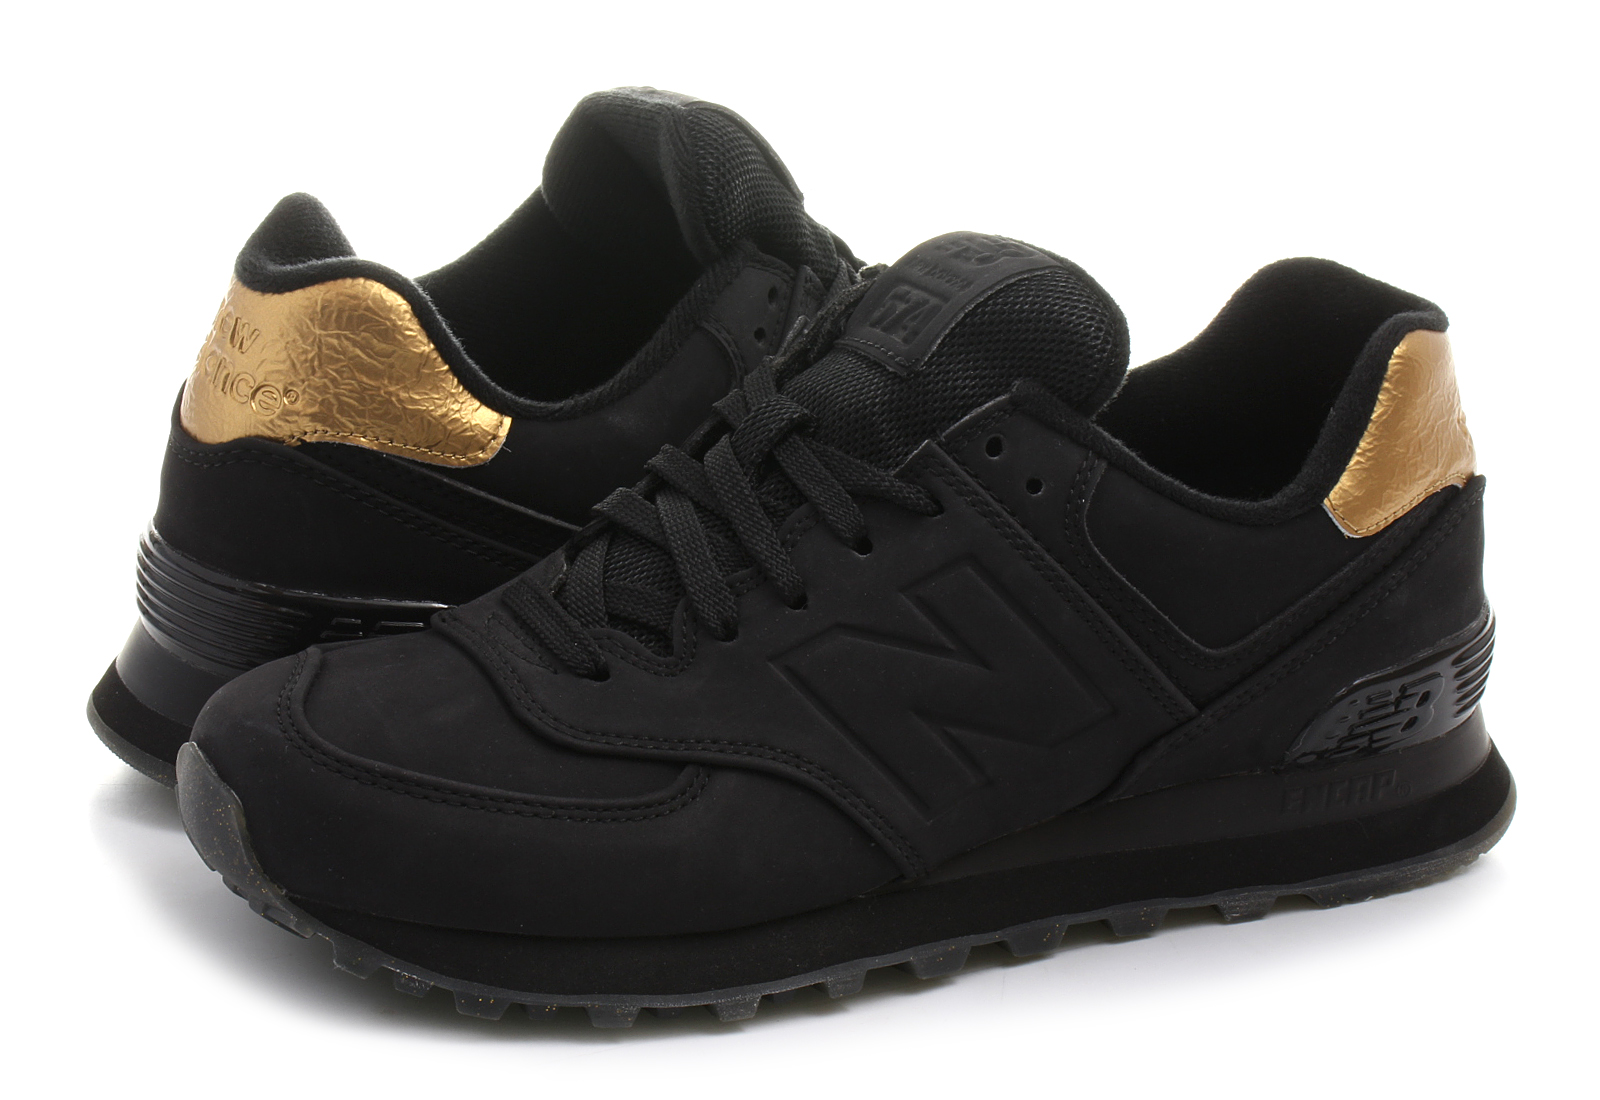 new balance shoes wl574 wl574mtc online shop for sneakers shoes and boots. Black Bedroom Furniture Sets. Home Design Ideas